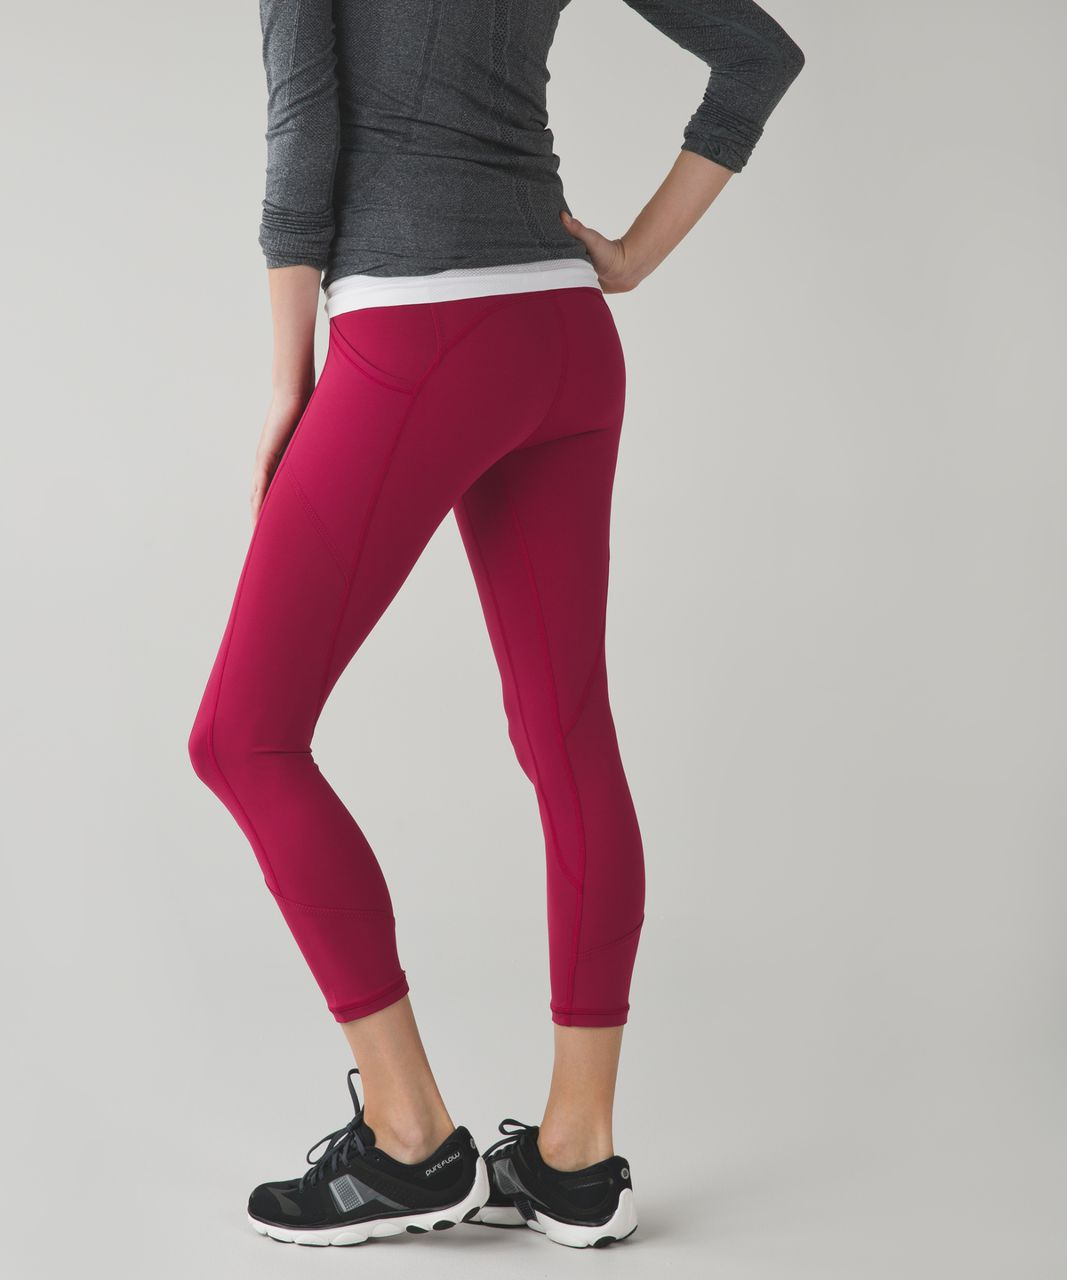 Lululemon All The Right Places Crop - Berry Rumble